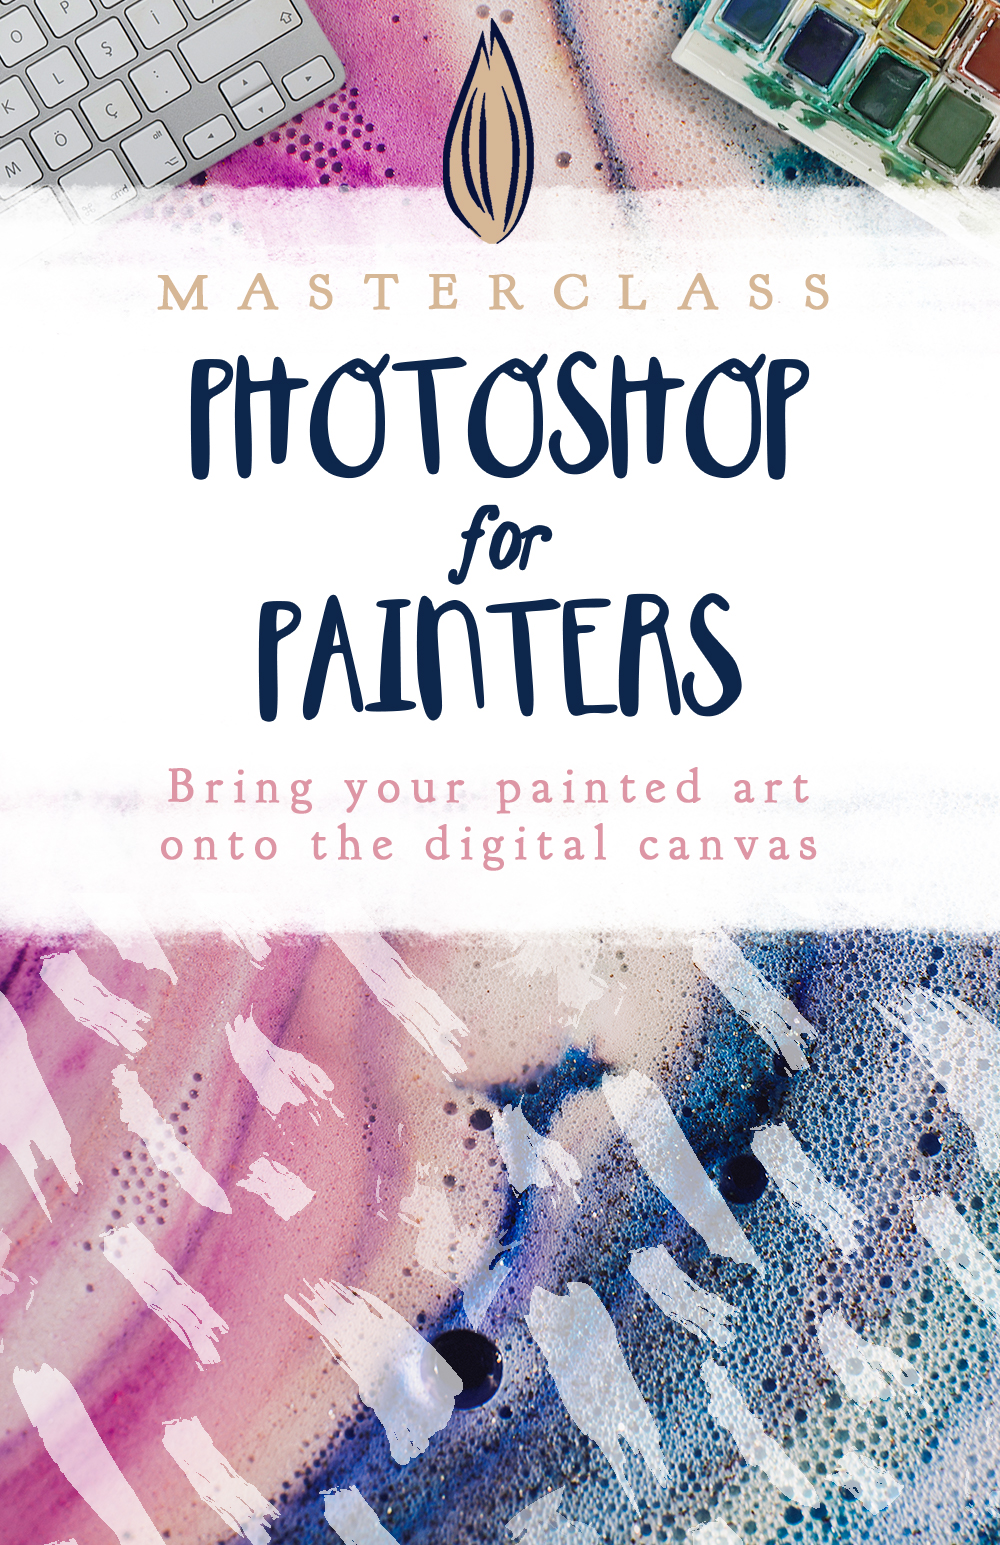 Photoshop for Painters: a class teaching you to bring your painted art onto the digital canvas